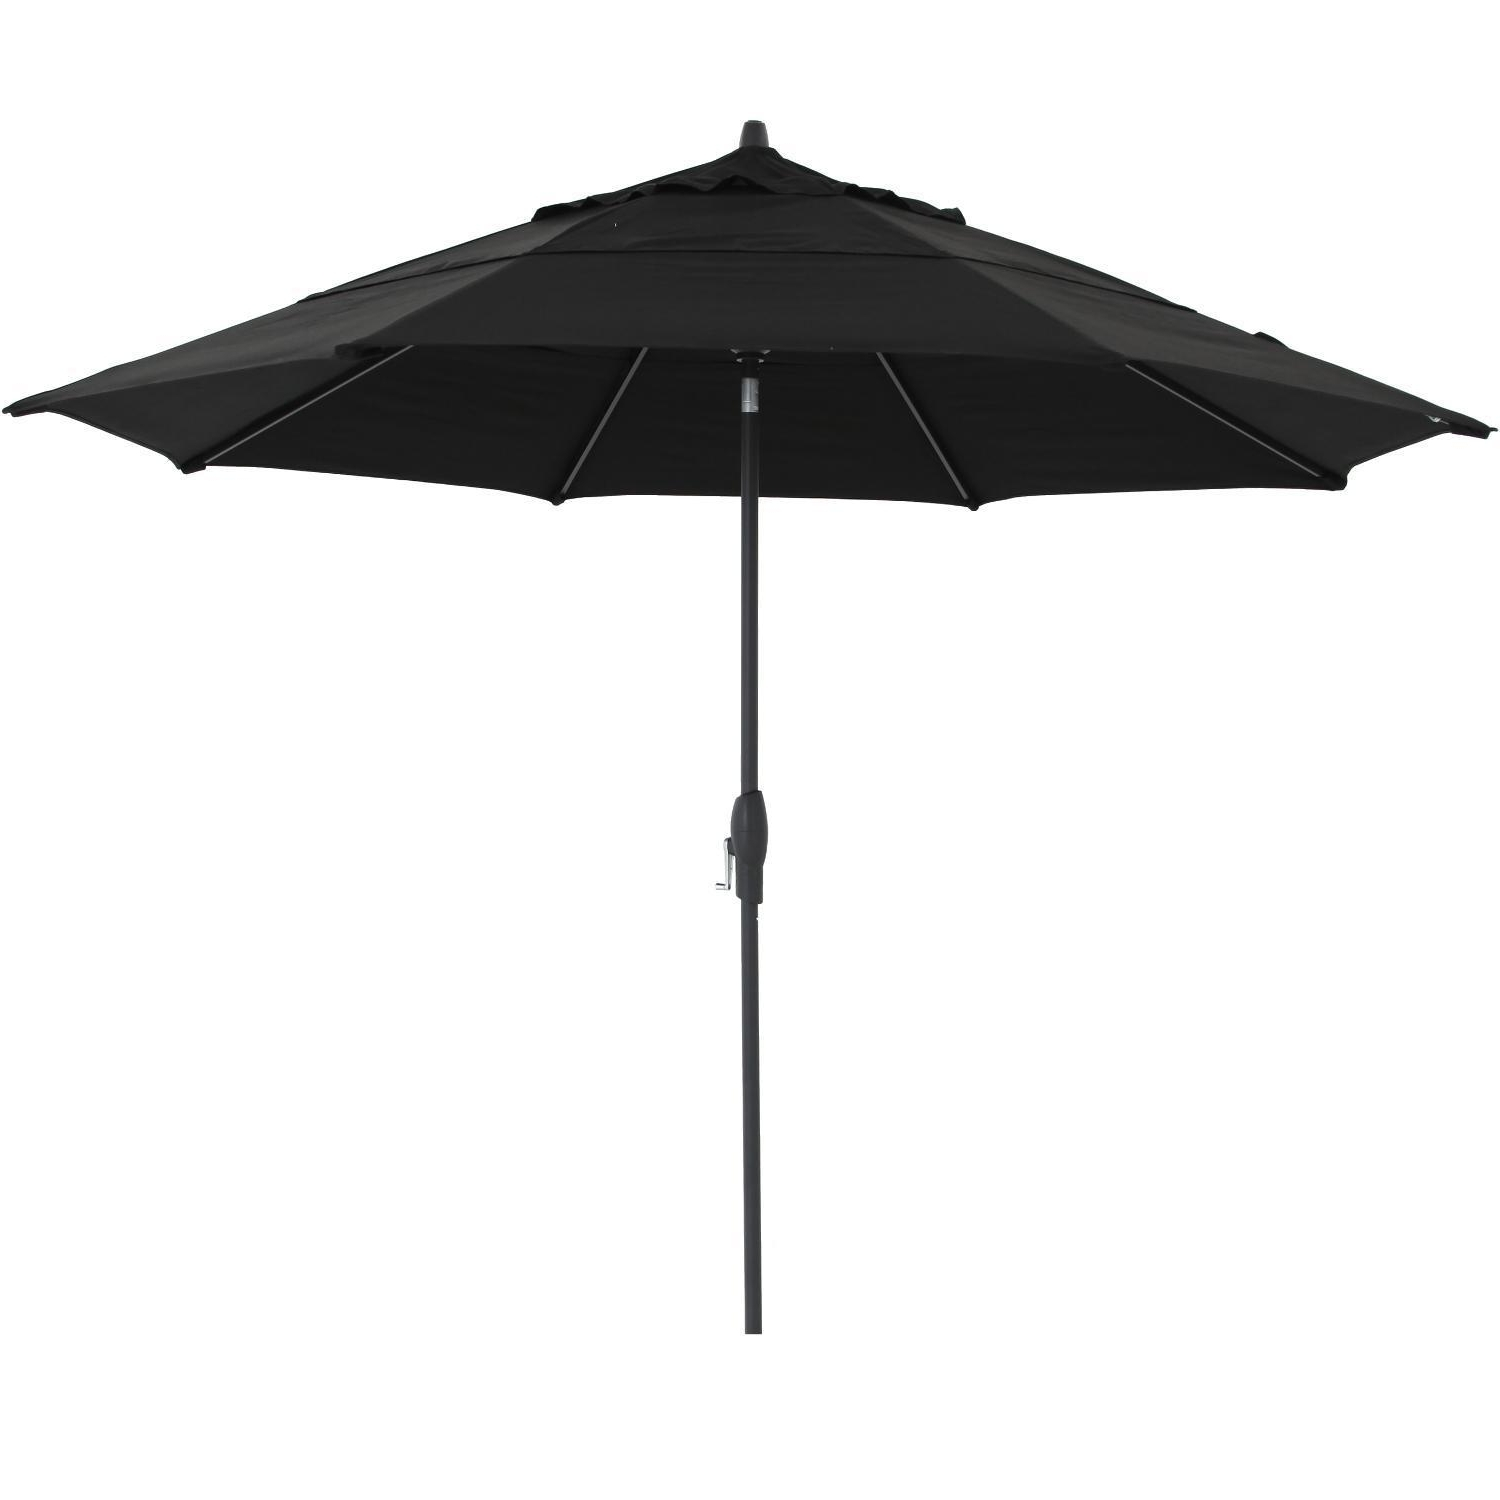 2019 11 Foot Patio Umbrellas Intended For Treasure Garden 11 Ft (View 19 of 20)